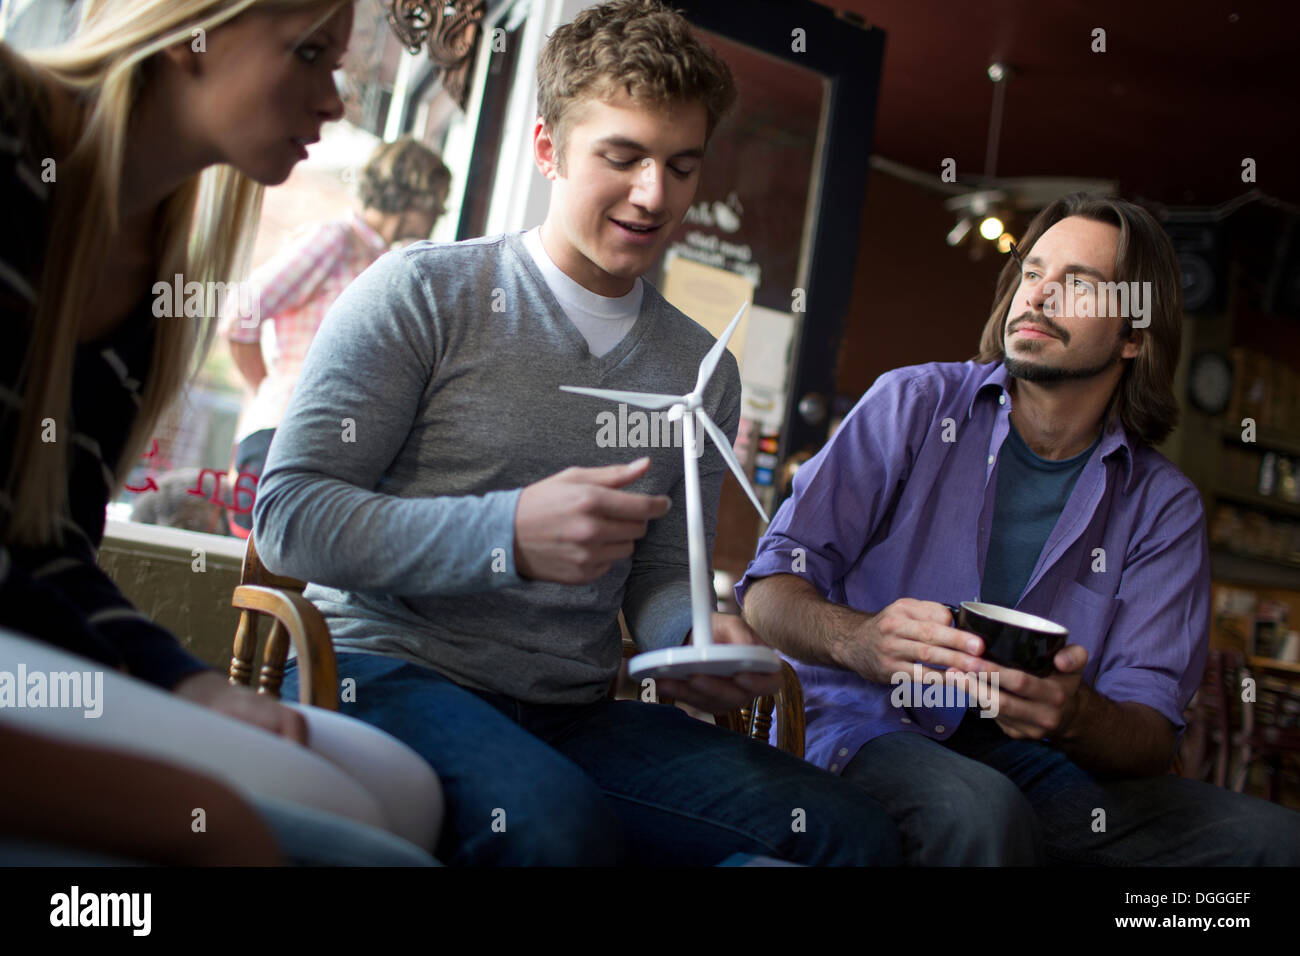 Small study group looking at model in coffee house - Stock Image